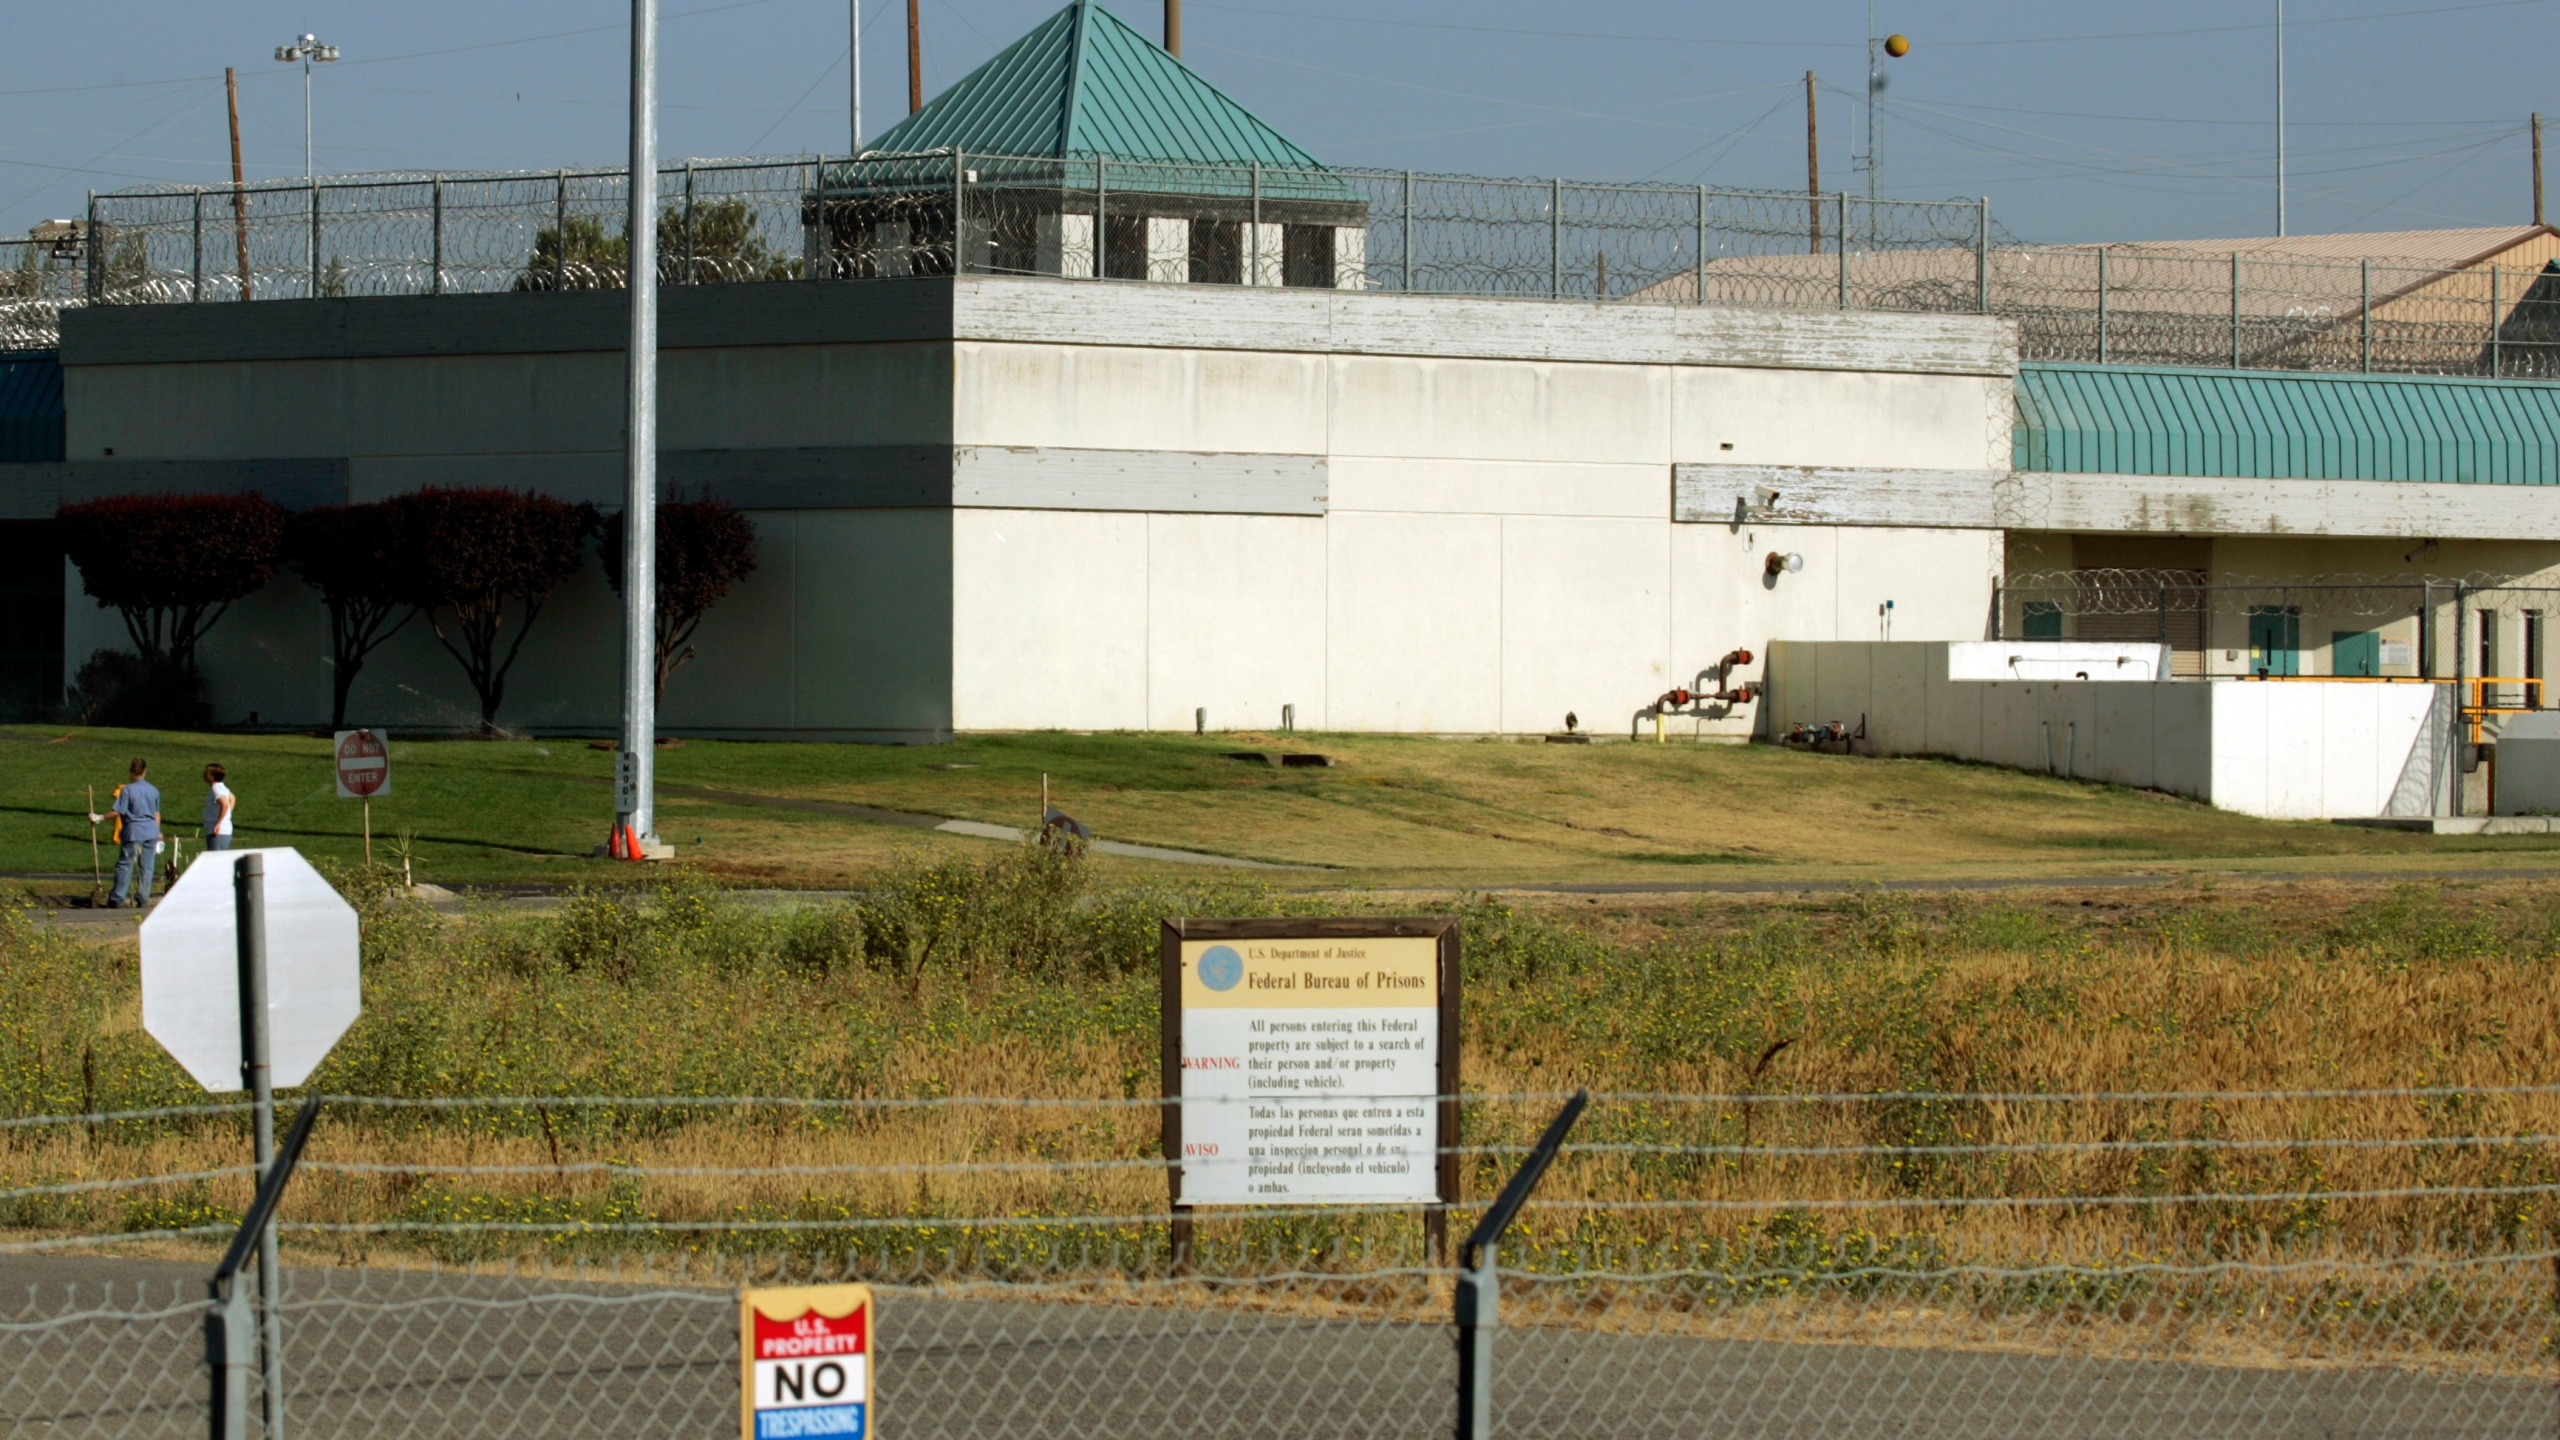 In this July 20, 2006, file photo, the Federal Correctional Institution in Dublin, Calif. Federal investigators have questioned the warden of the federal women's prison in California and searched his office. It comes weeks after a former correctional officer at the facility was arrested on charges of sexually abusing inmates. It wasn't immediately clear if the search at the Federal Correctional Institution at Dublin was connected to last month's arrest. (AP Photo/Ben Margot, File)